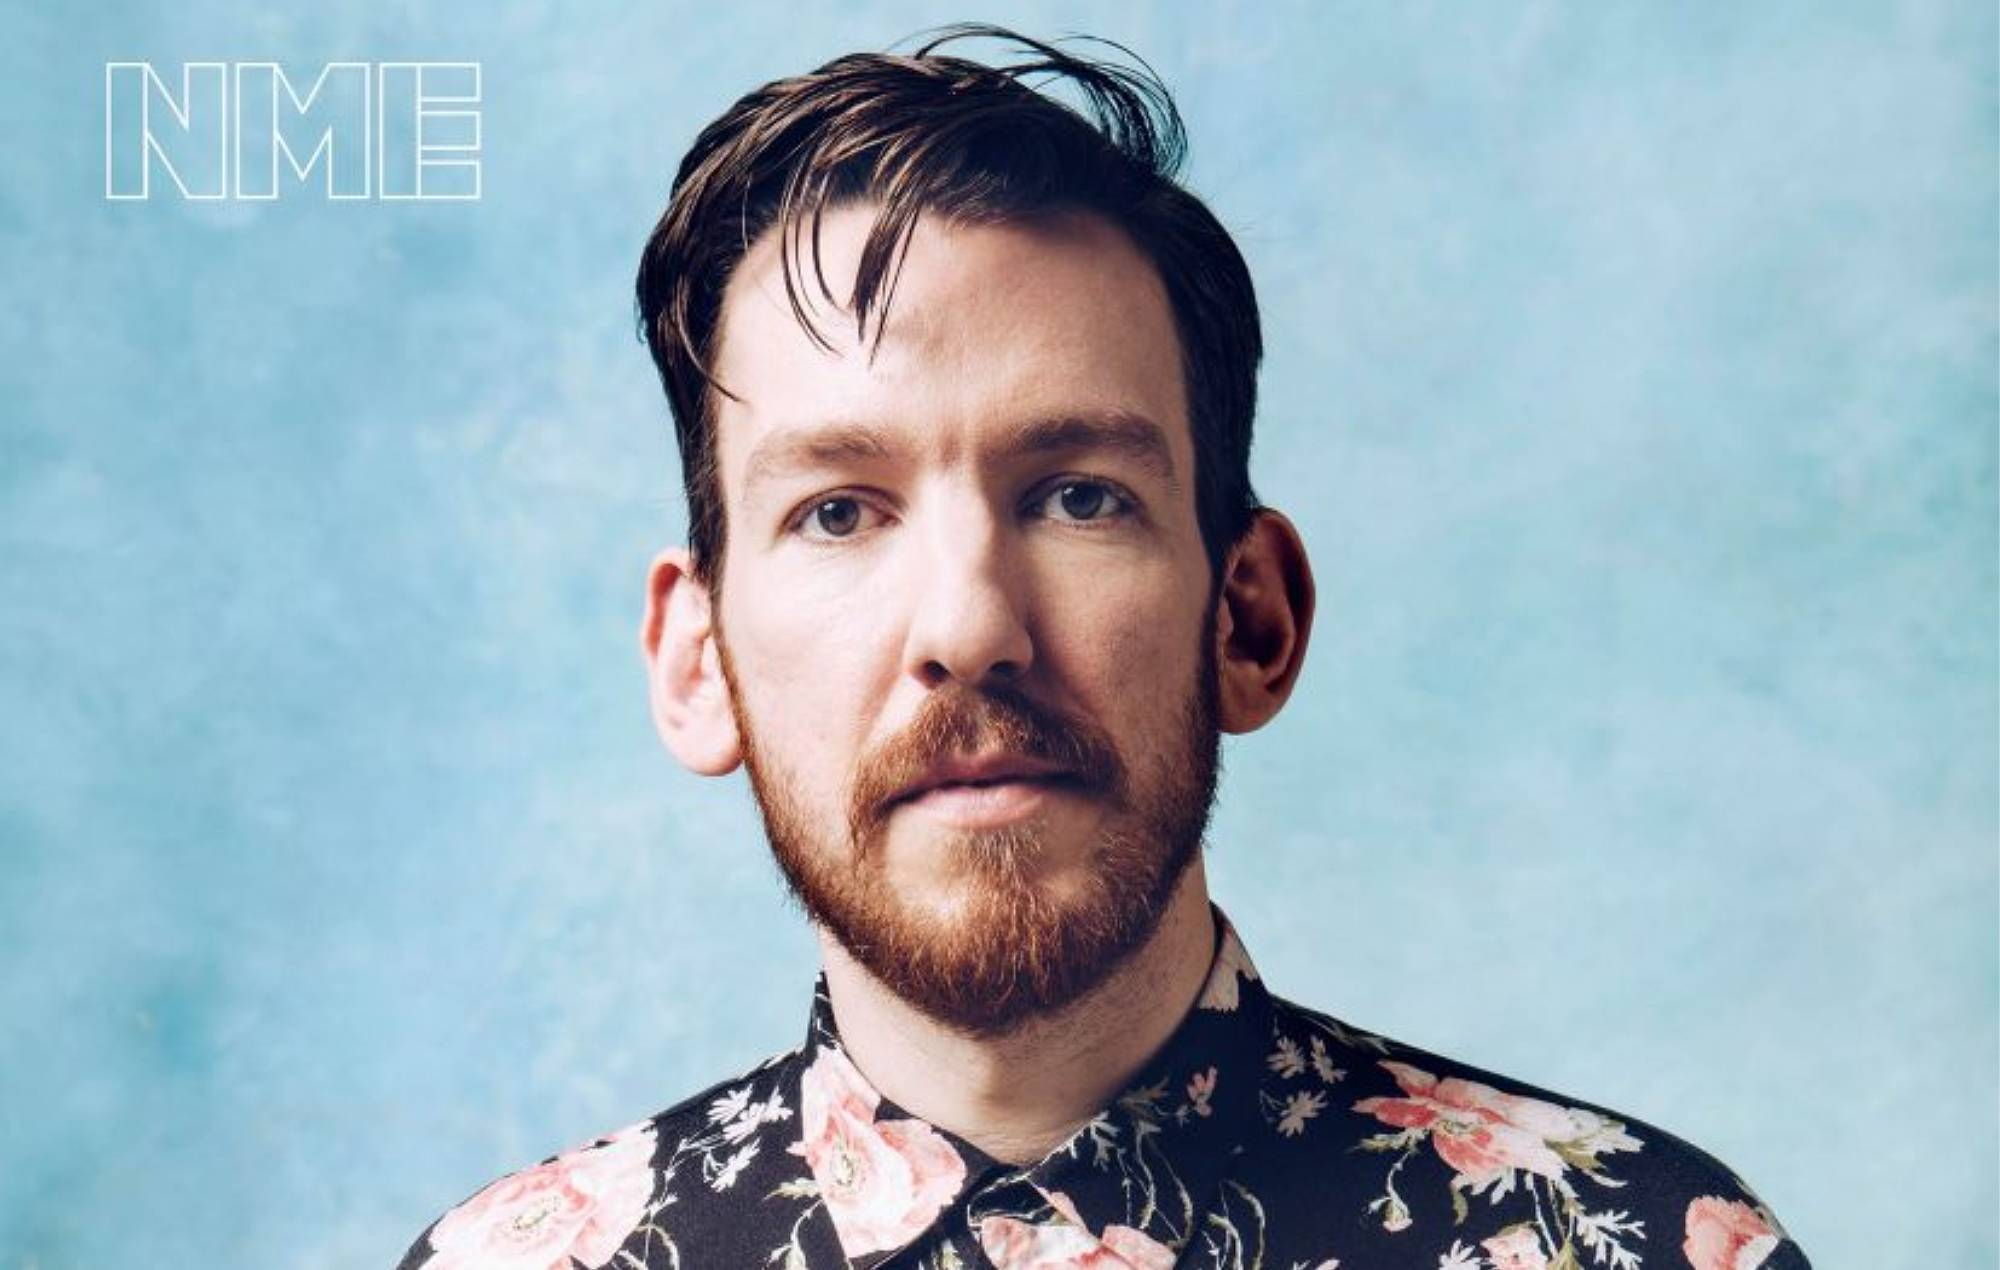 Foals' Edwin Congreave. Credit: Fiona Garden for NME